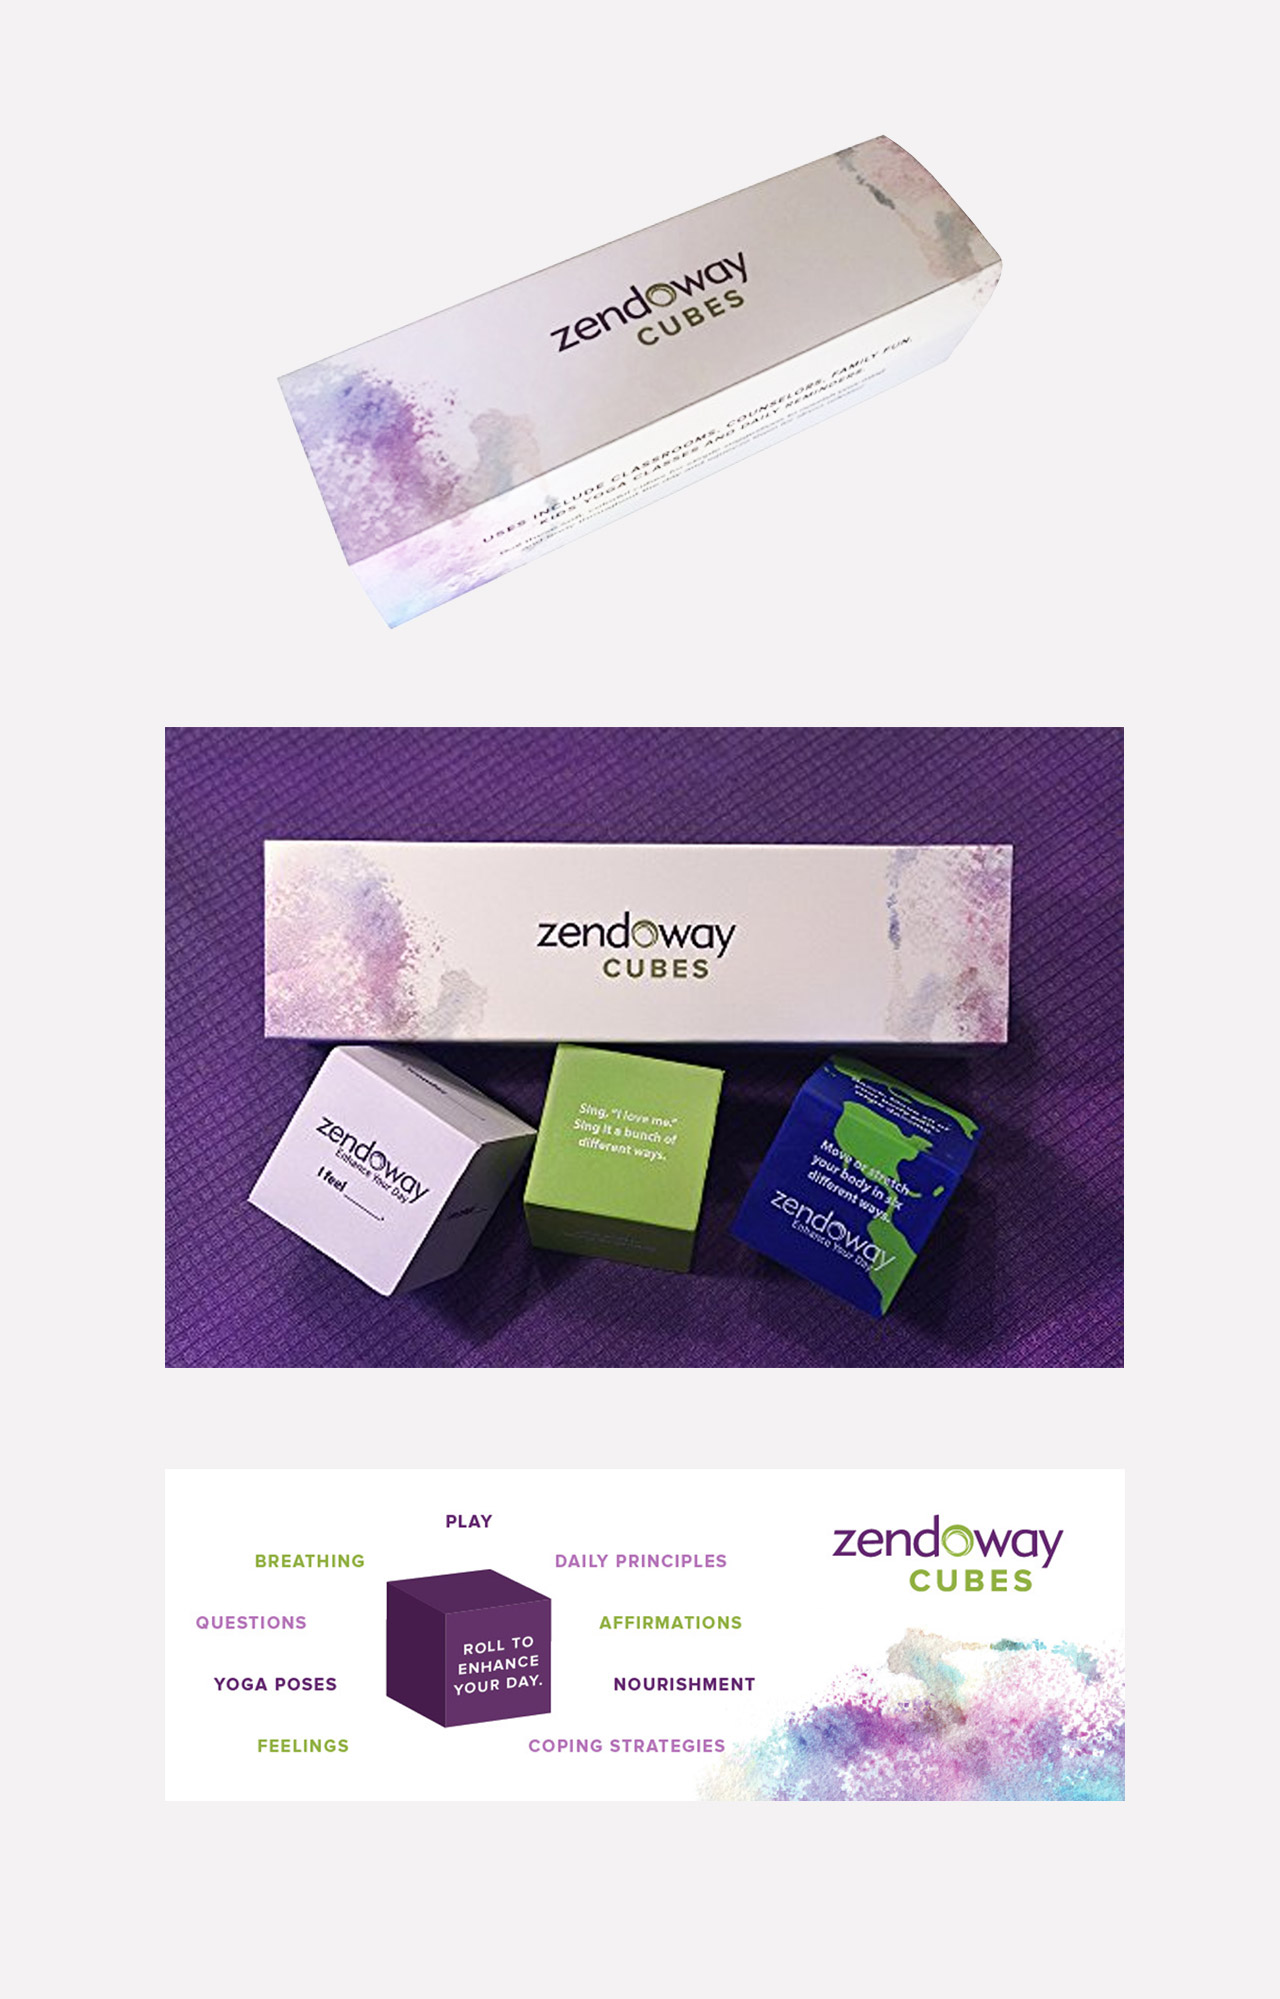 Zendoway Cubes Sell packaging design